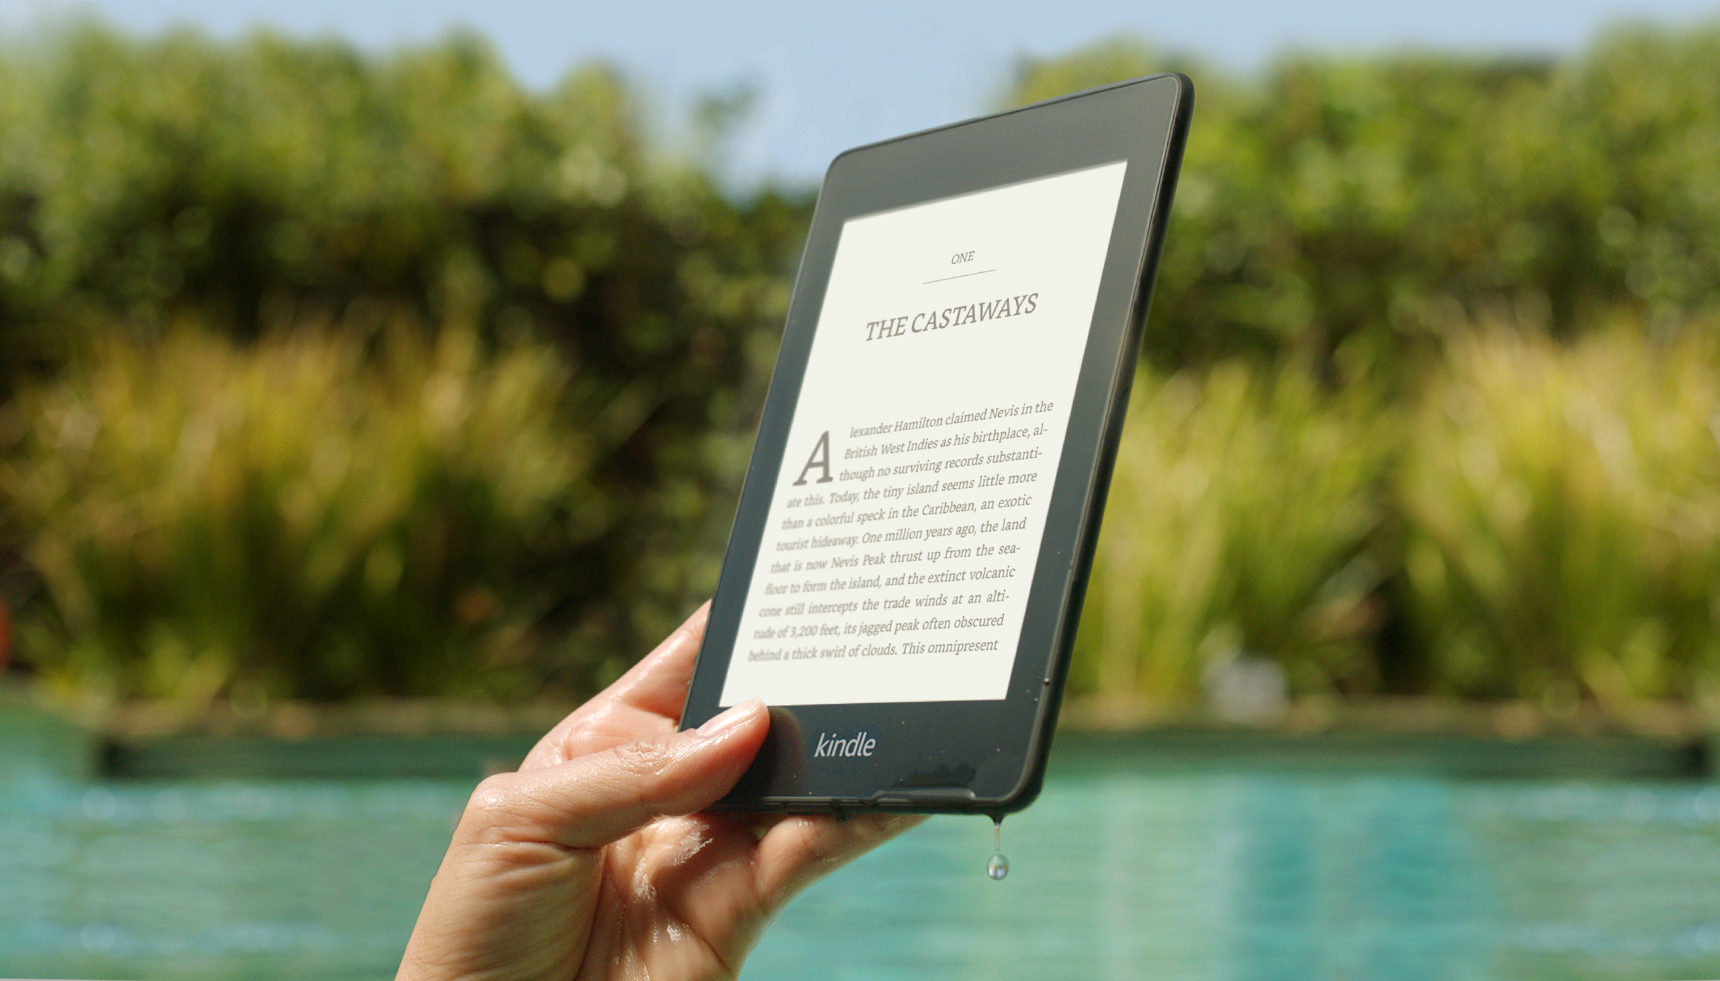 download kindle 1.24 for mac